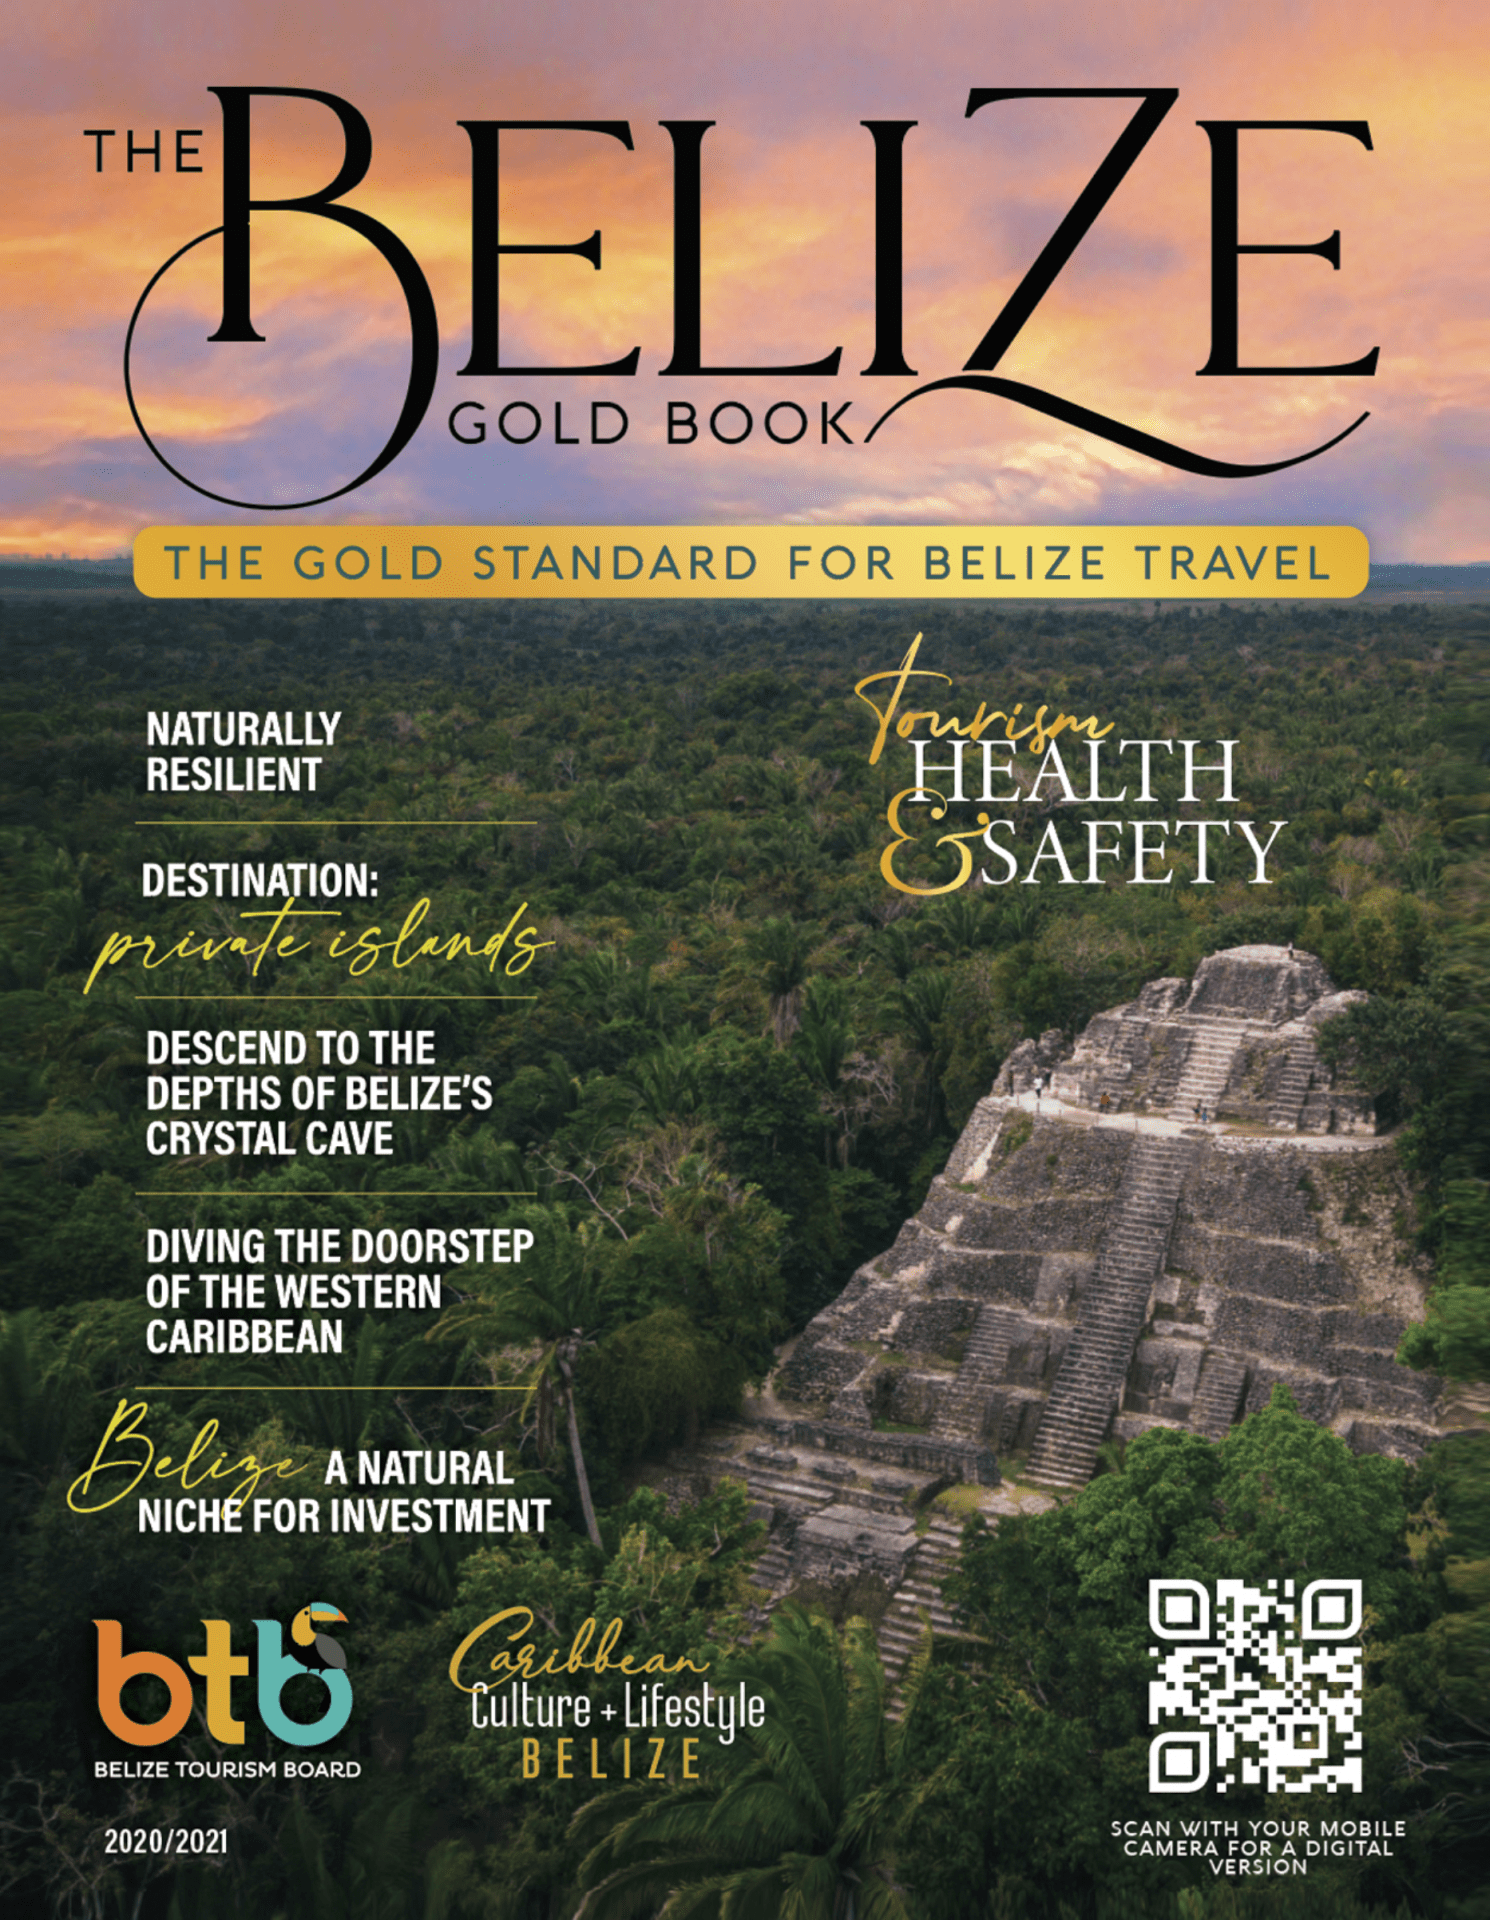 belize gold book 2nd cover lamanai